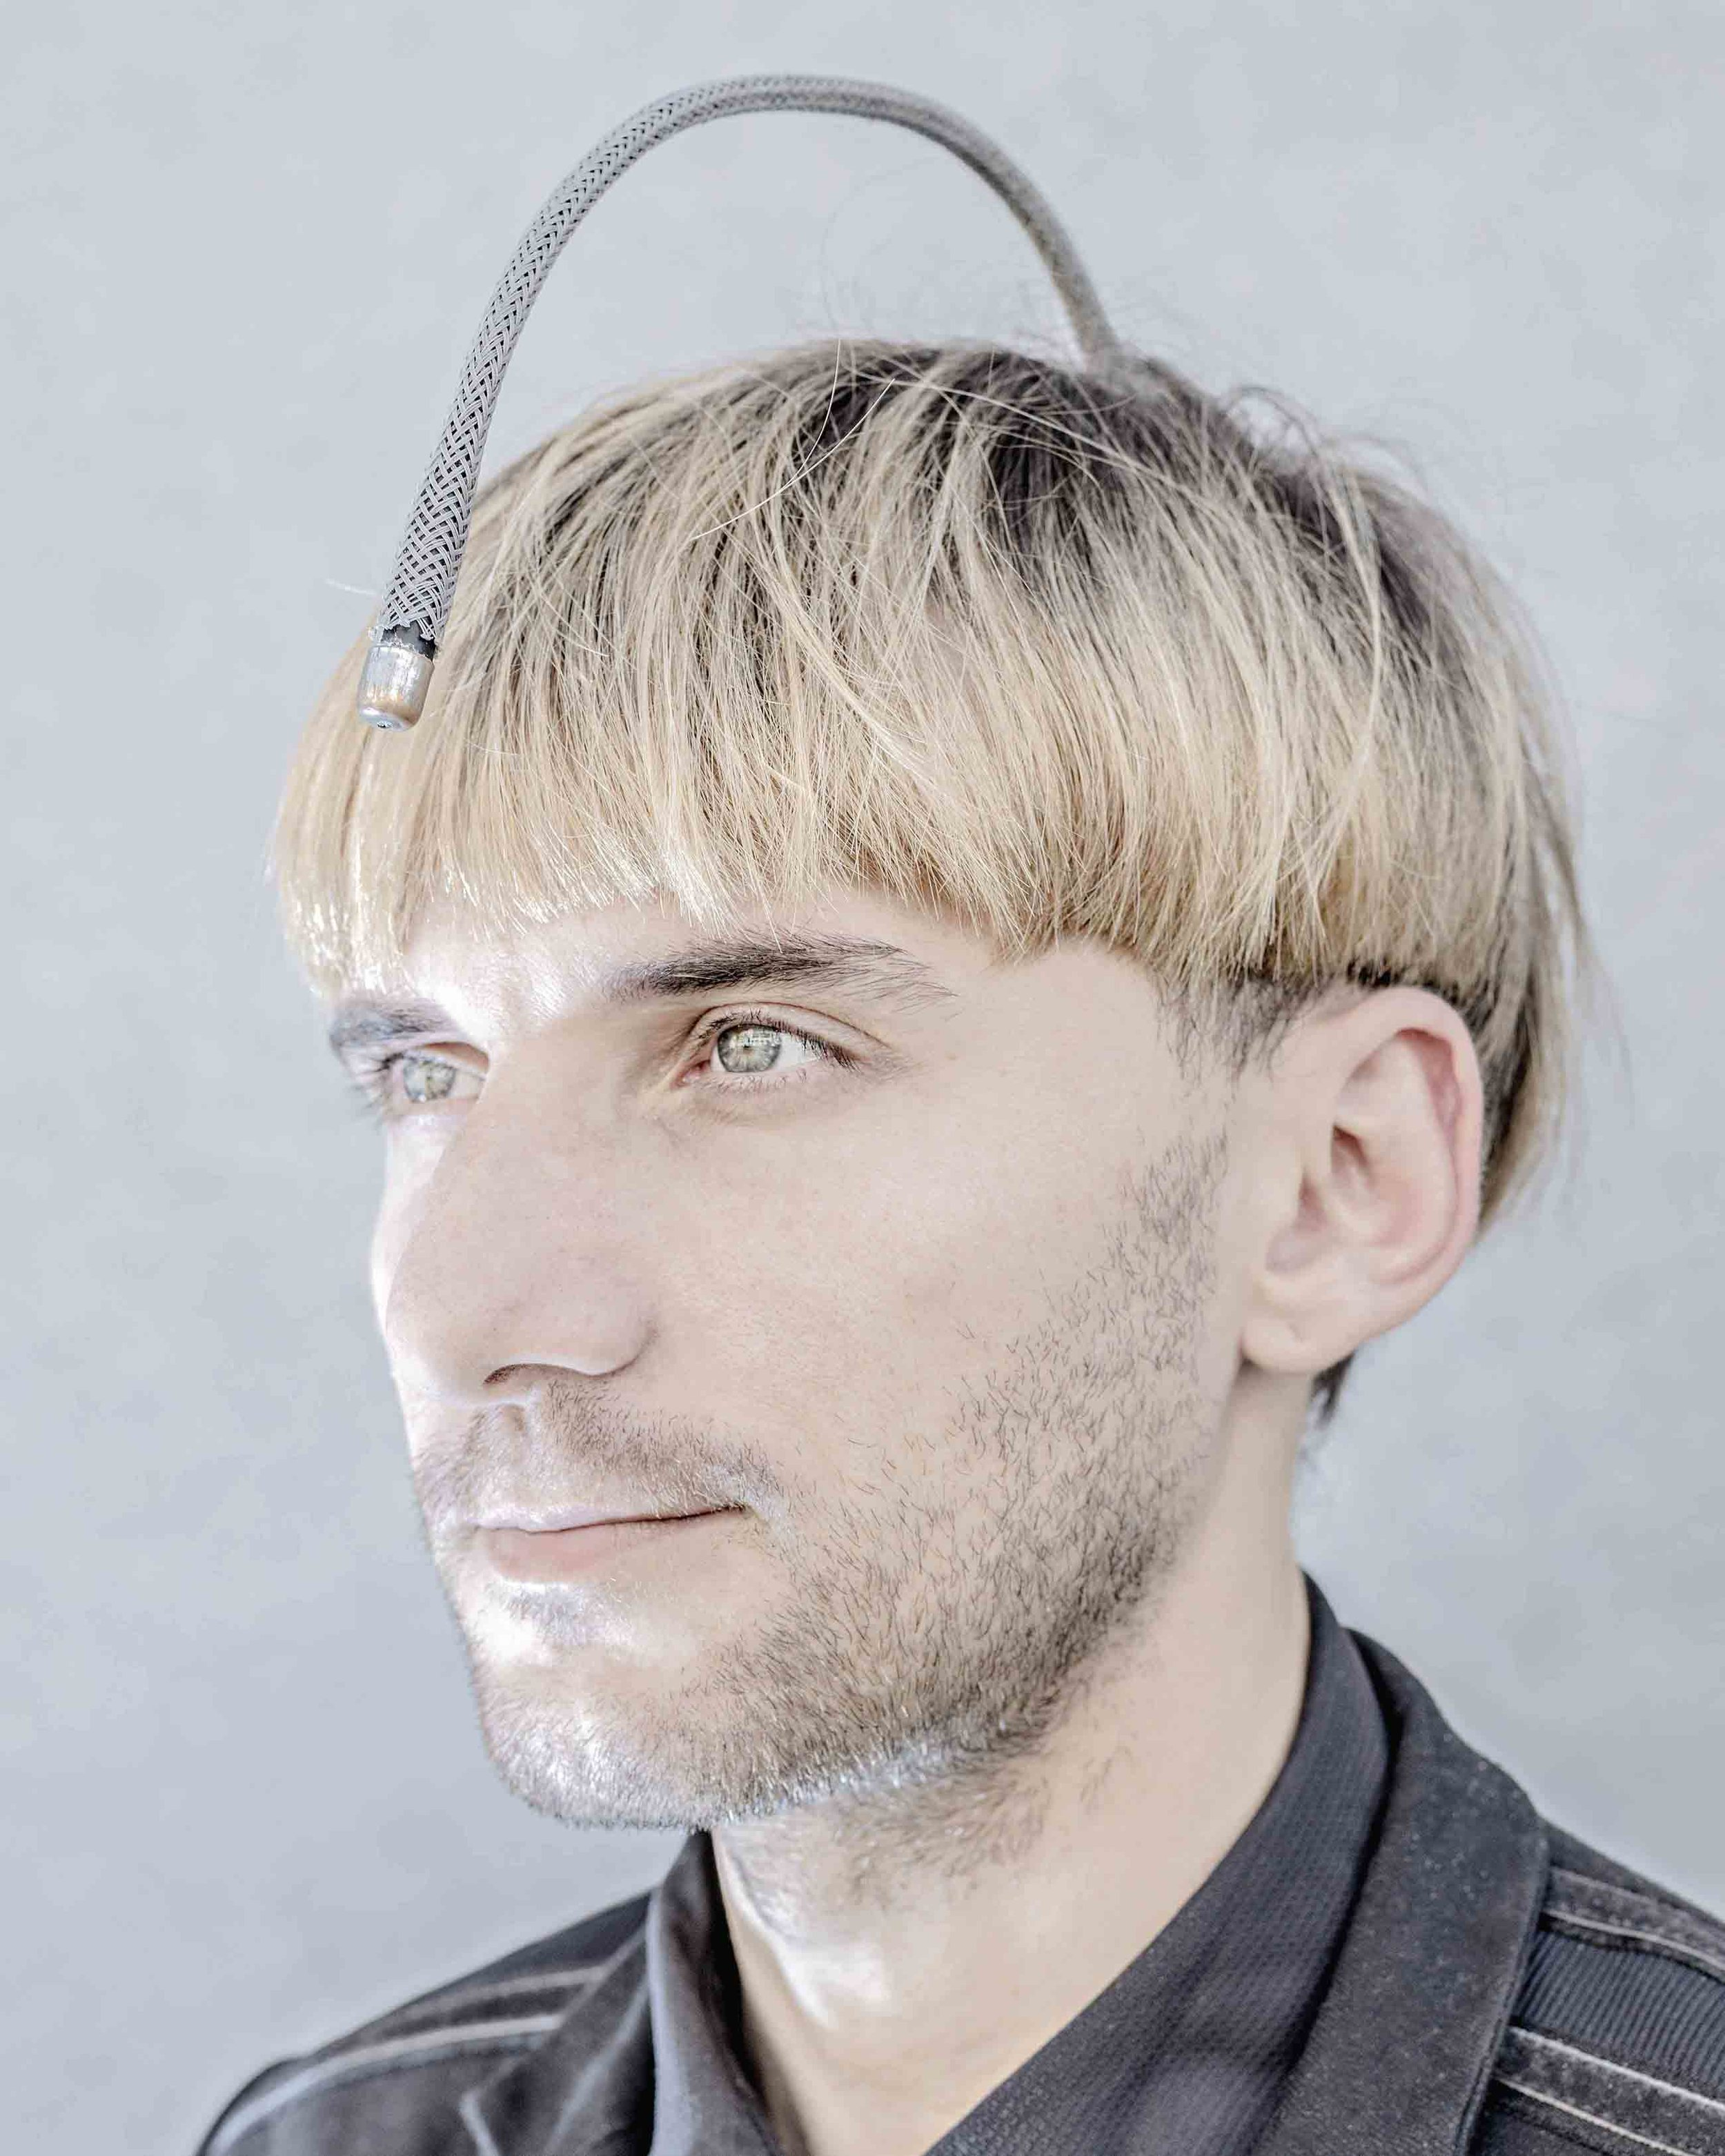 Matthieu Gafsou.  Neil Harbisson considers himself a cyborg. Suffering from achromatopsy, a rare form of color blindness, he had a prosthesis called Eyeborg implanted into his skull that senses colors and converts them into sound waves. Harbisson pleads for the enhancement of human creativity and sometimes distances himself from transhumanism, deeming it too stuck in stereotyped or commercial representations. His vision is more that of an artist than a disciple of technoscience. He takes pride in being the first human to appear with his prosthesis on his passport photo.  Munich, July 15, 2015.  Courtesy of the artist, Galerie C and MAPS.